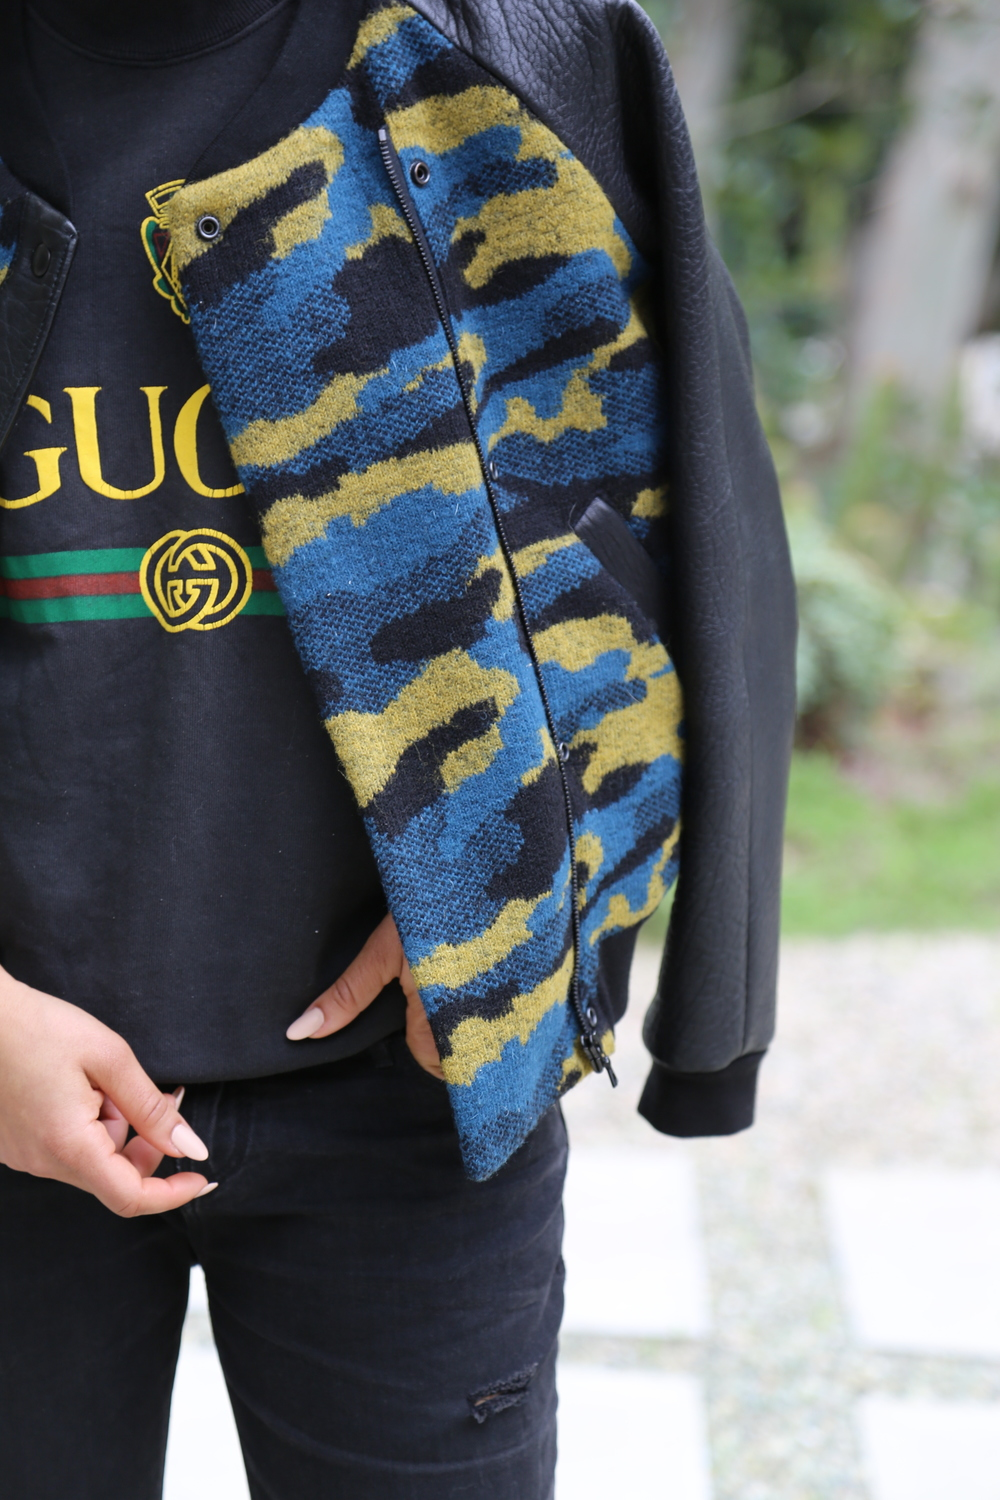 VANESSA-BELETIC-VINTAGE-GUCCI-SWEATSHIRT-GRYPHON-CAMO-JACKET-RTA-DENIM-LOS-ANGELES.JPG